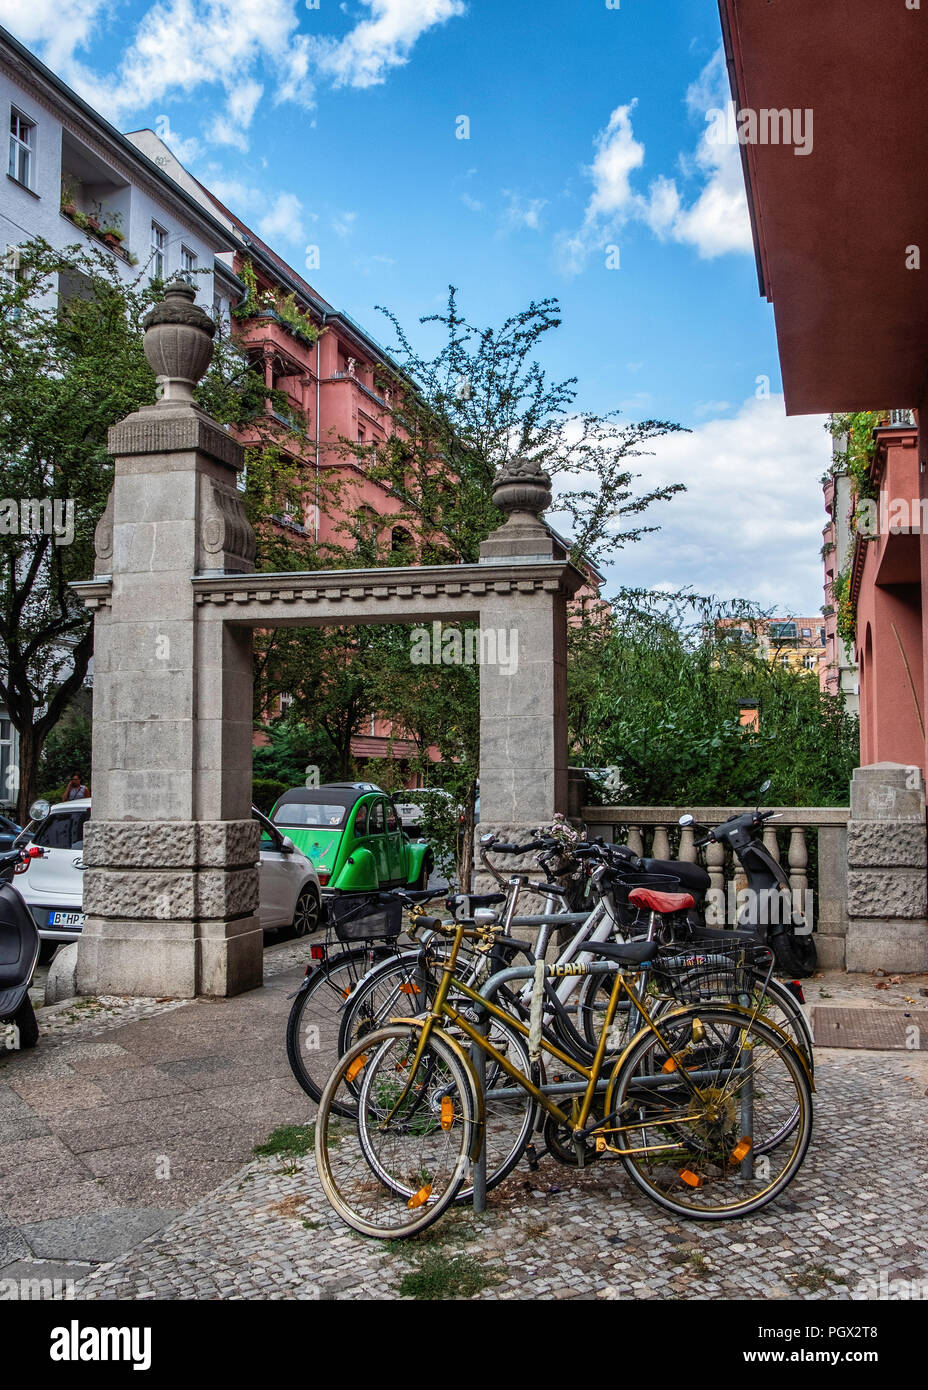 Berlin-Friedrichshain. Sandstone gate at entrance of the Knorrpromenade housing estate built 1911-1913 for wealthy citizens The residential complex wa - Stock Image